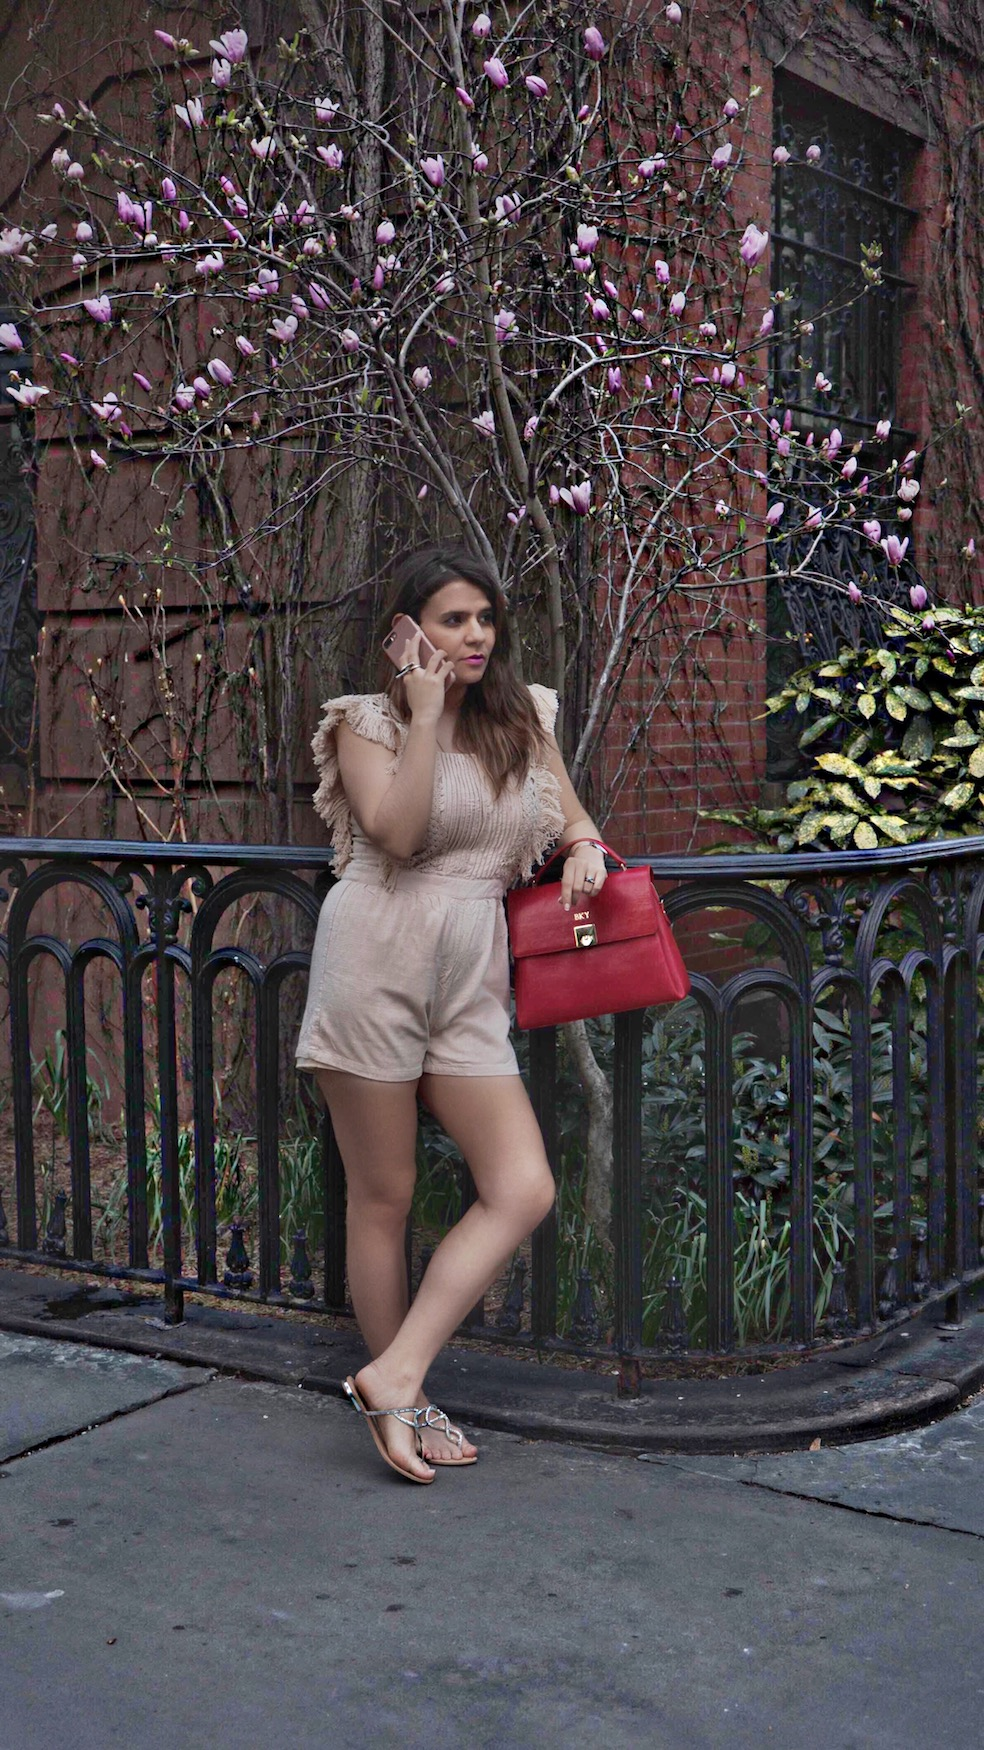 embroidery-romper-initial-mon-purse-alley-girl-new-york